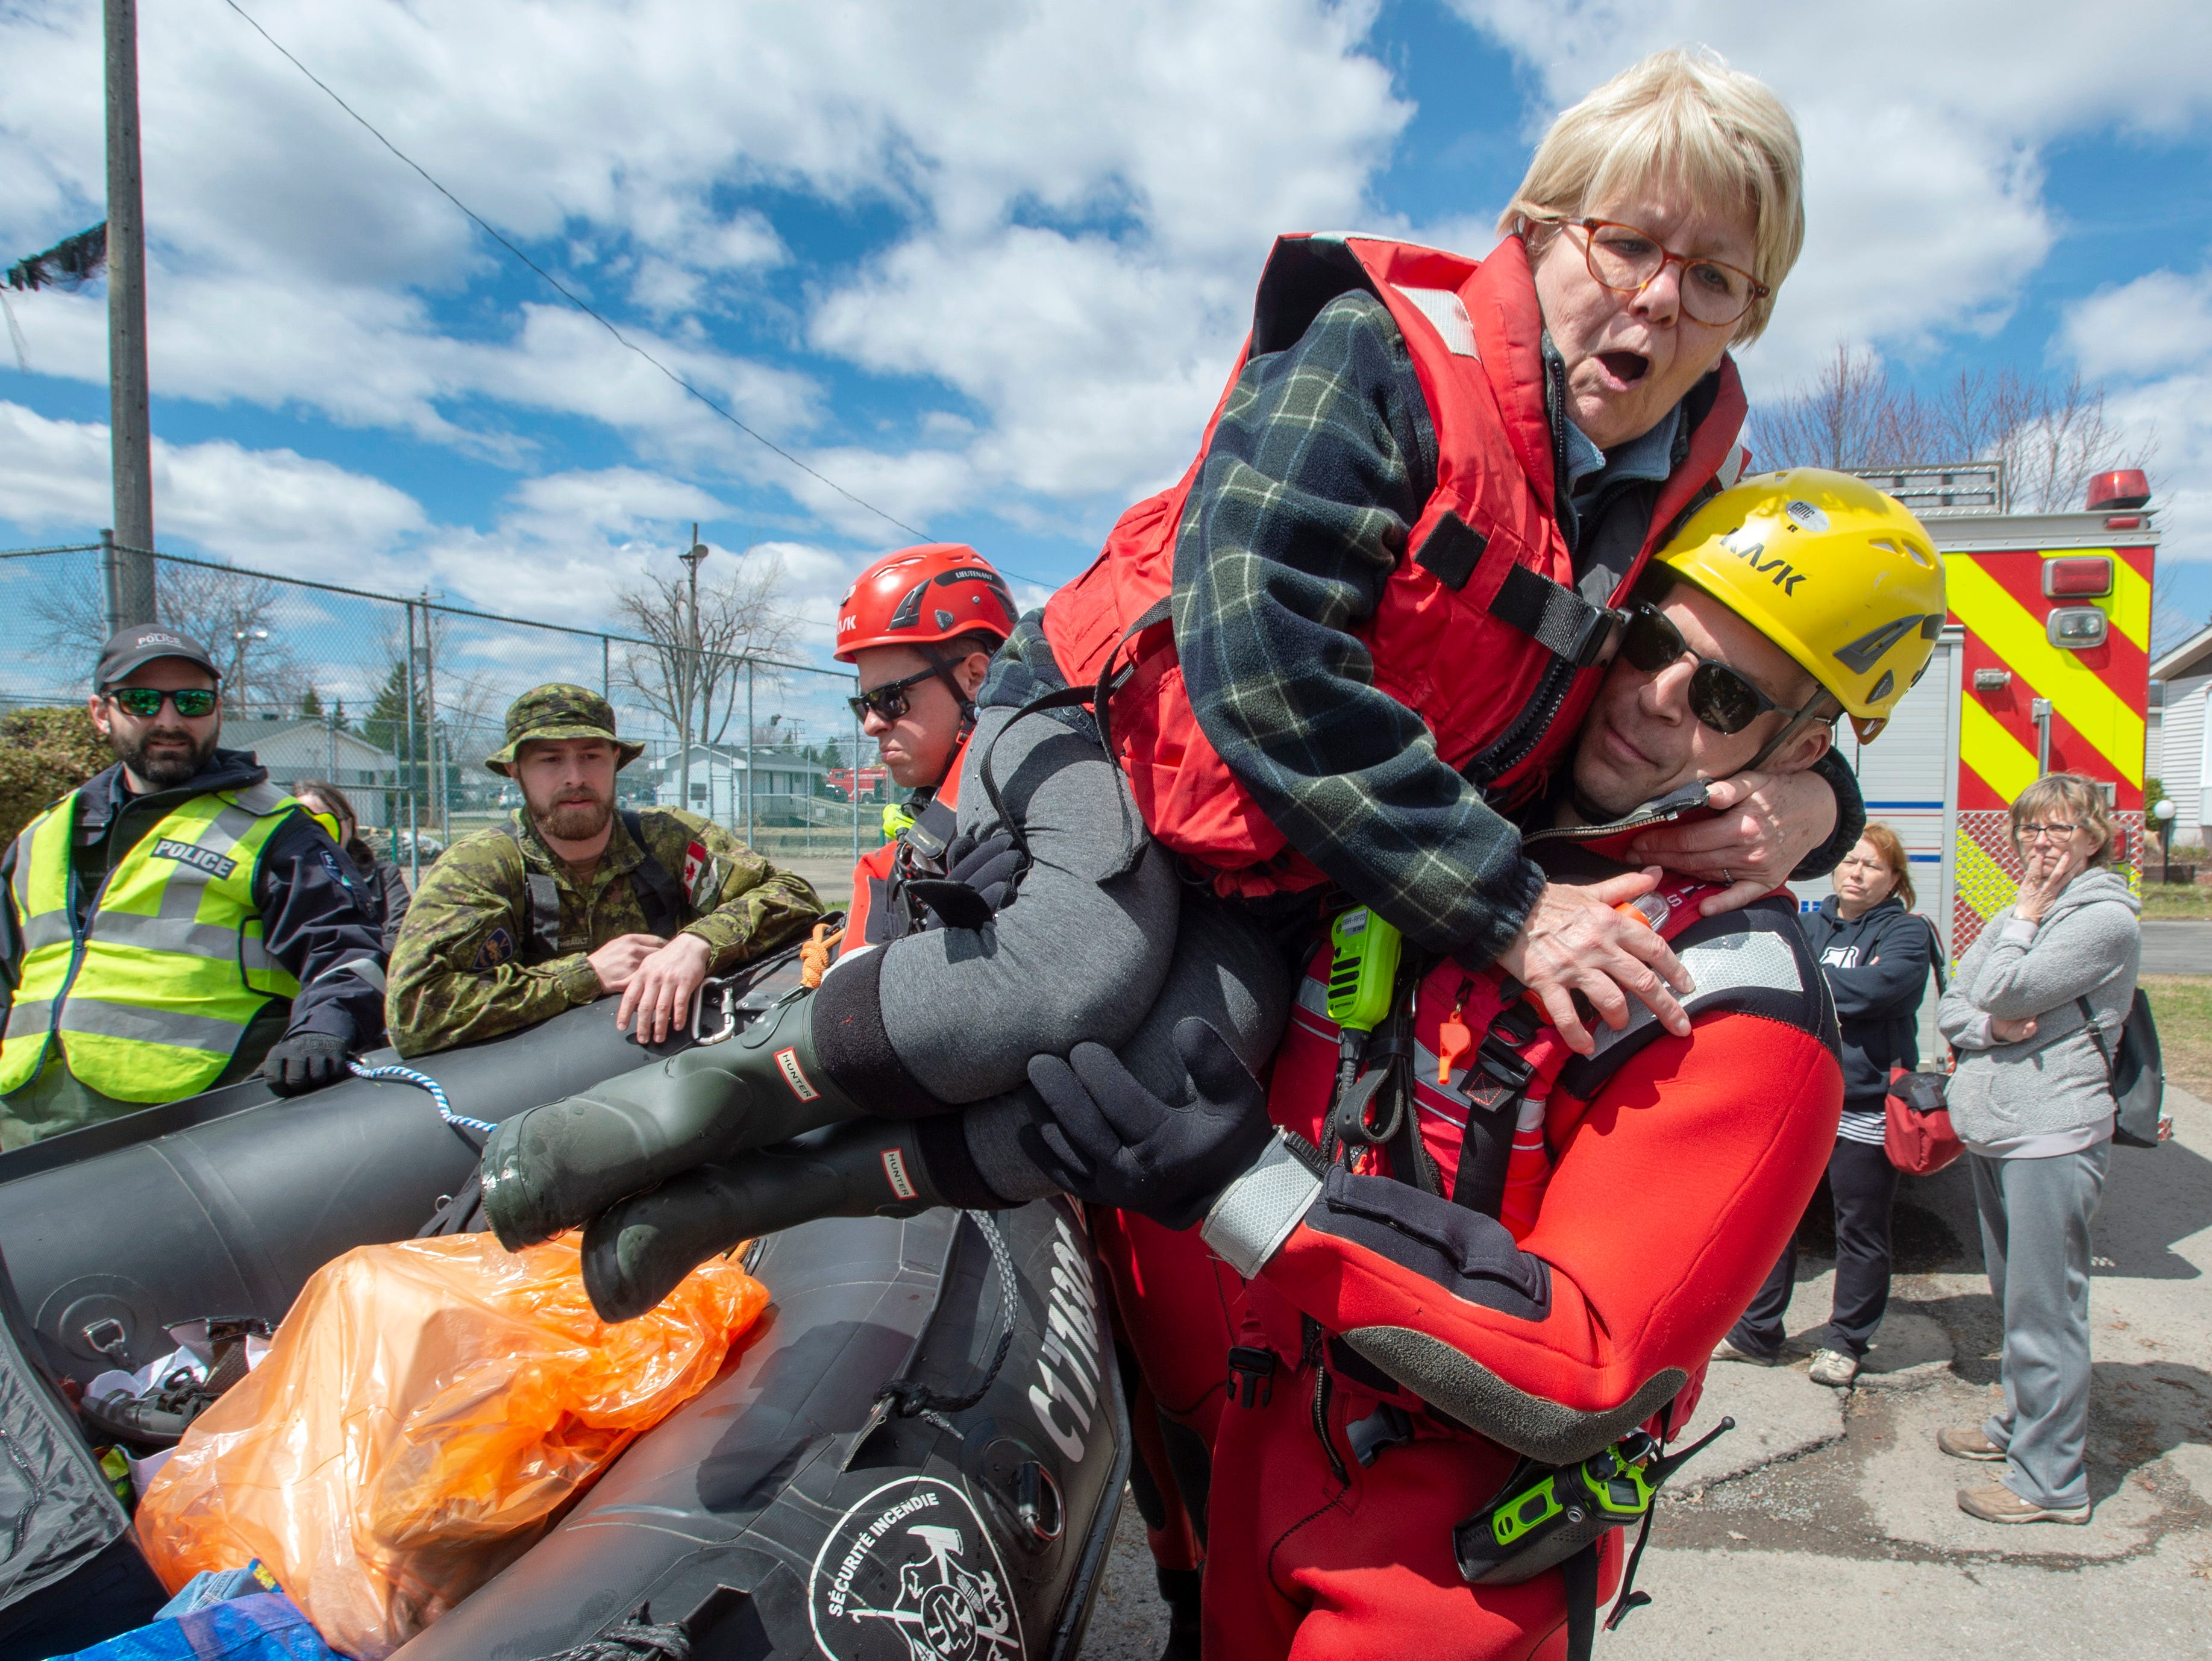 Boisbriand firefighter Alex Turgeon helps Jocelyne Martin out of a Zodiac after retrieving some belongings from her flooded home in St-.Marthe-sur-la-Lac, Quebec on Tuesday, April 30, 2019.